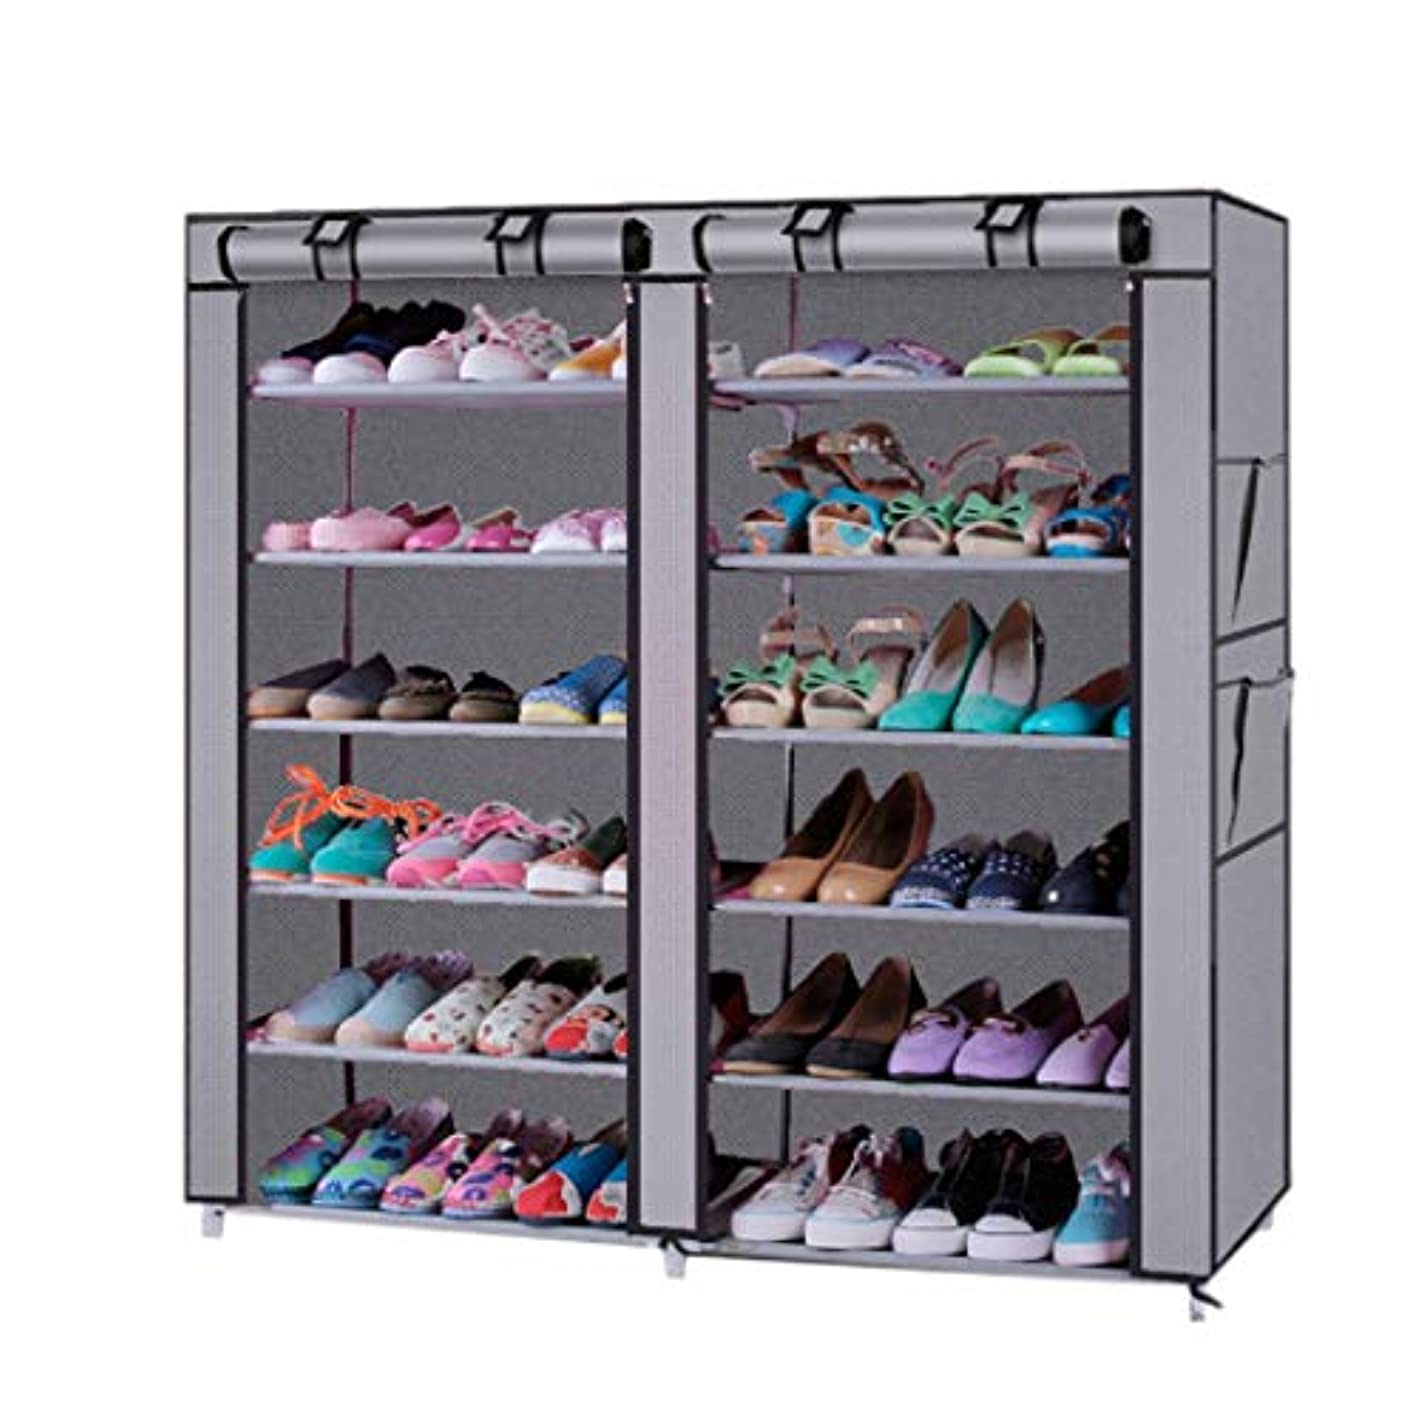 Quklei Shoe Rack Stand Organizer DIY Assembly 6 Layers Non-Woven Fabric Stackable Shoe Rack Storage Shelves, No Tools Required (US Stock) (Gray)